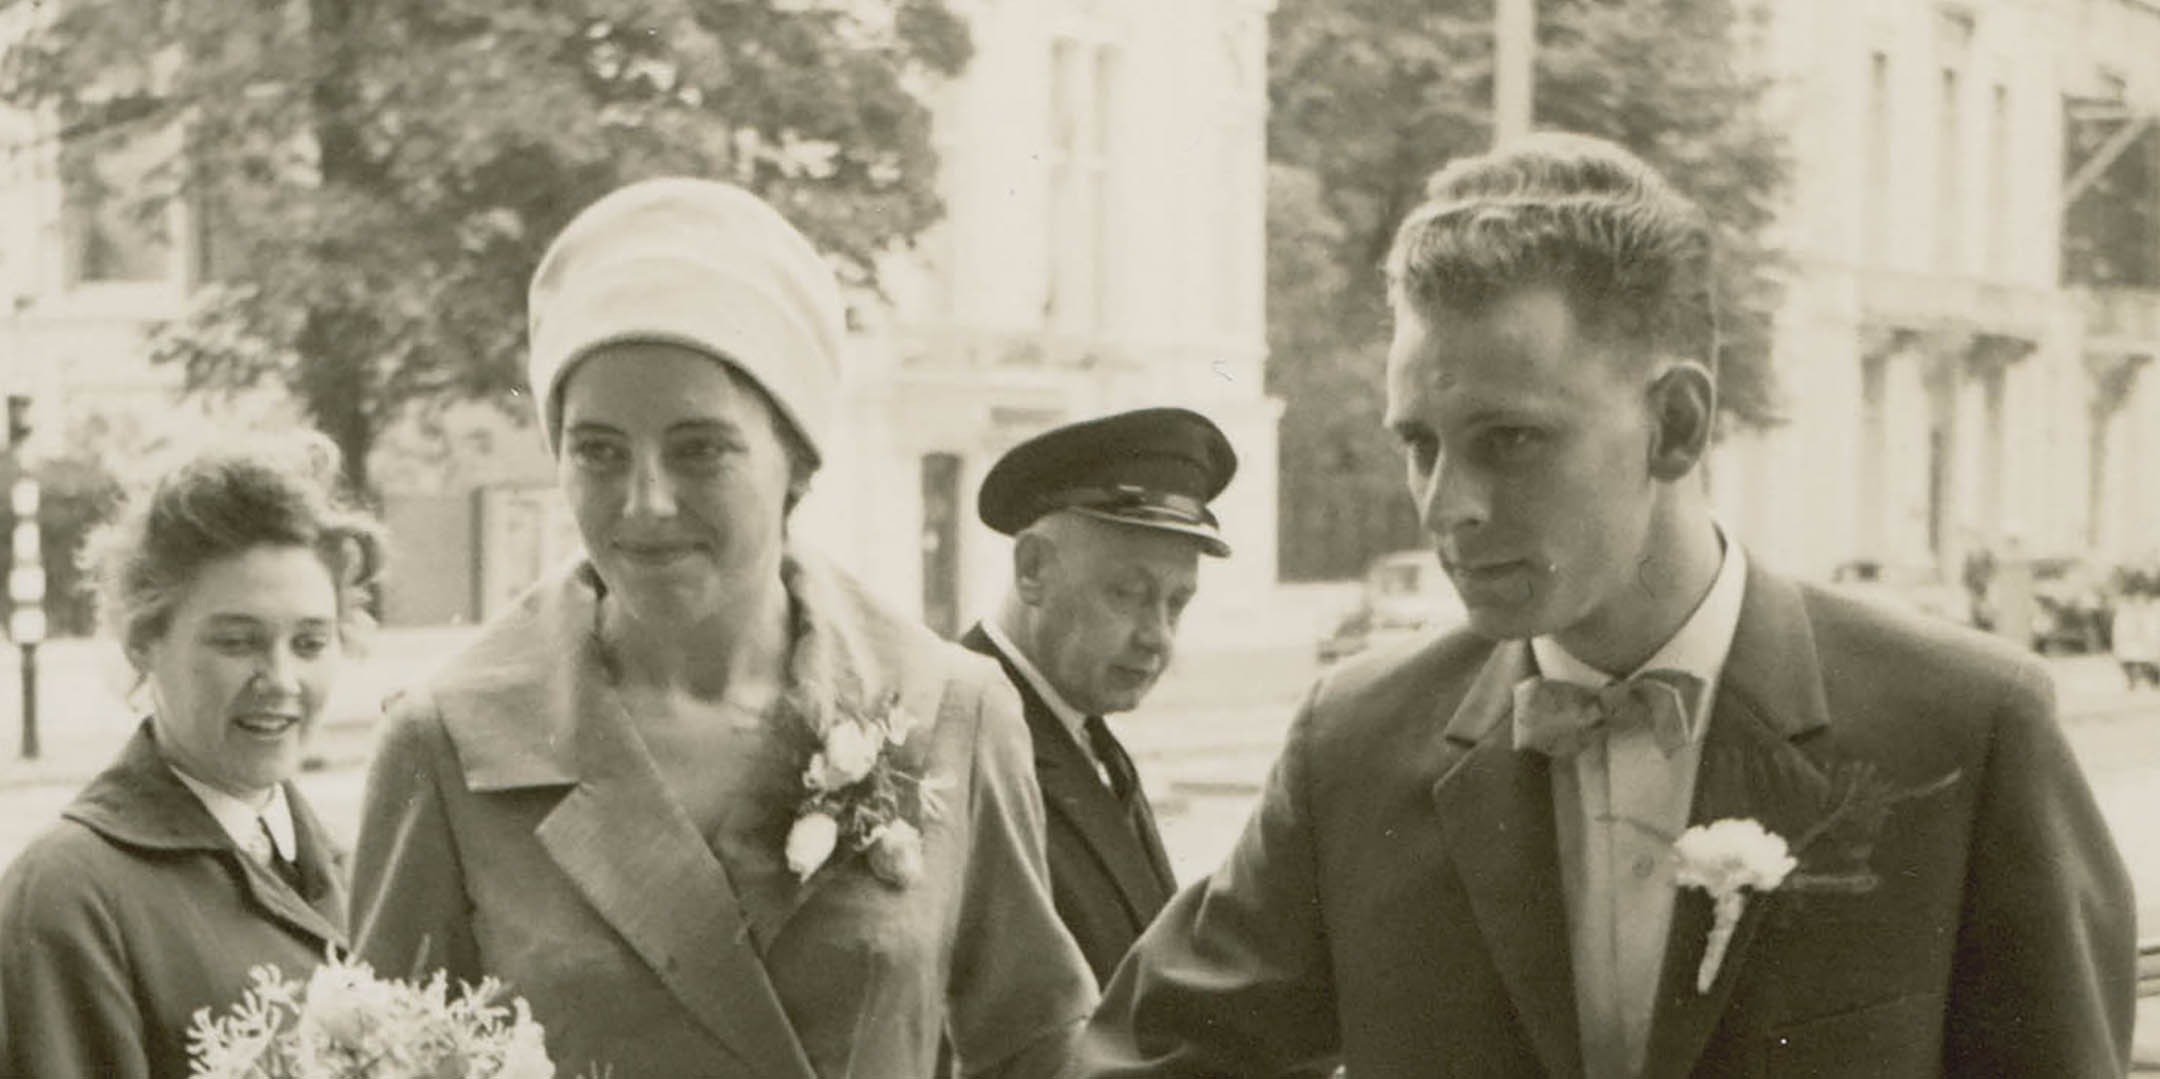 Klaas and Aafke Woldring on their wedding day, the Netherlands, 1959. Reproduced courtesy Klaas and Aafke Woldring.